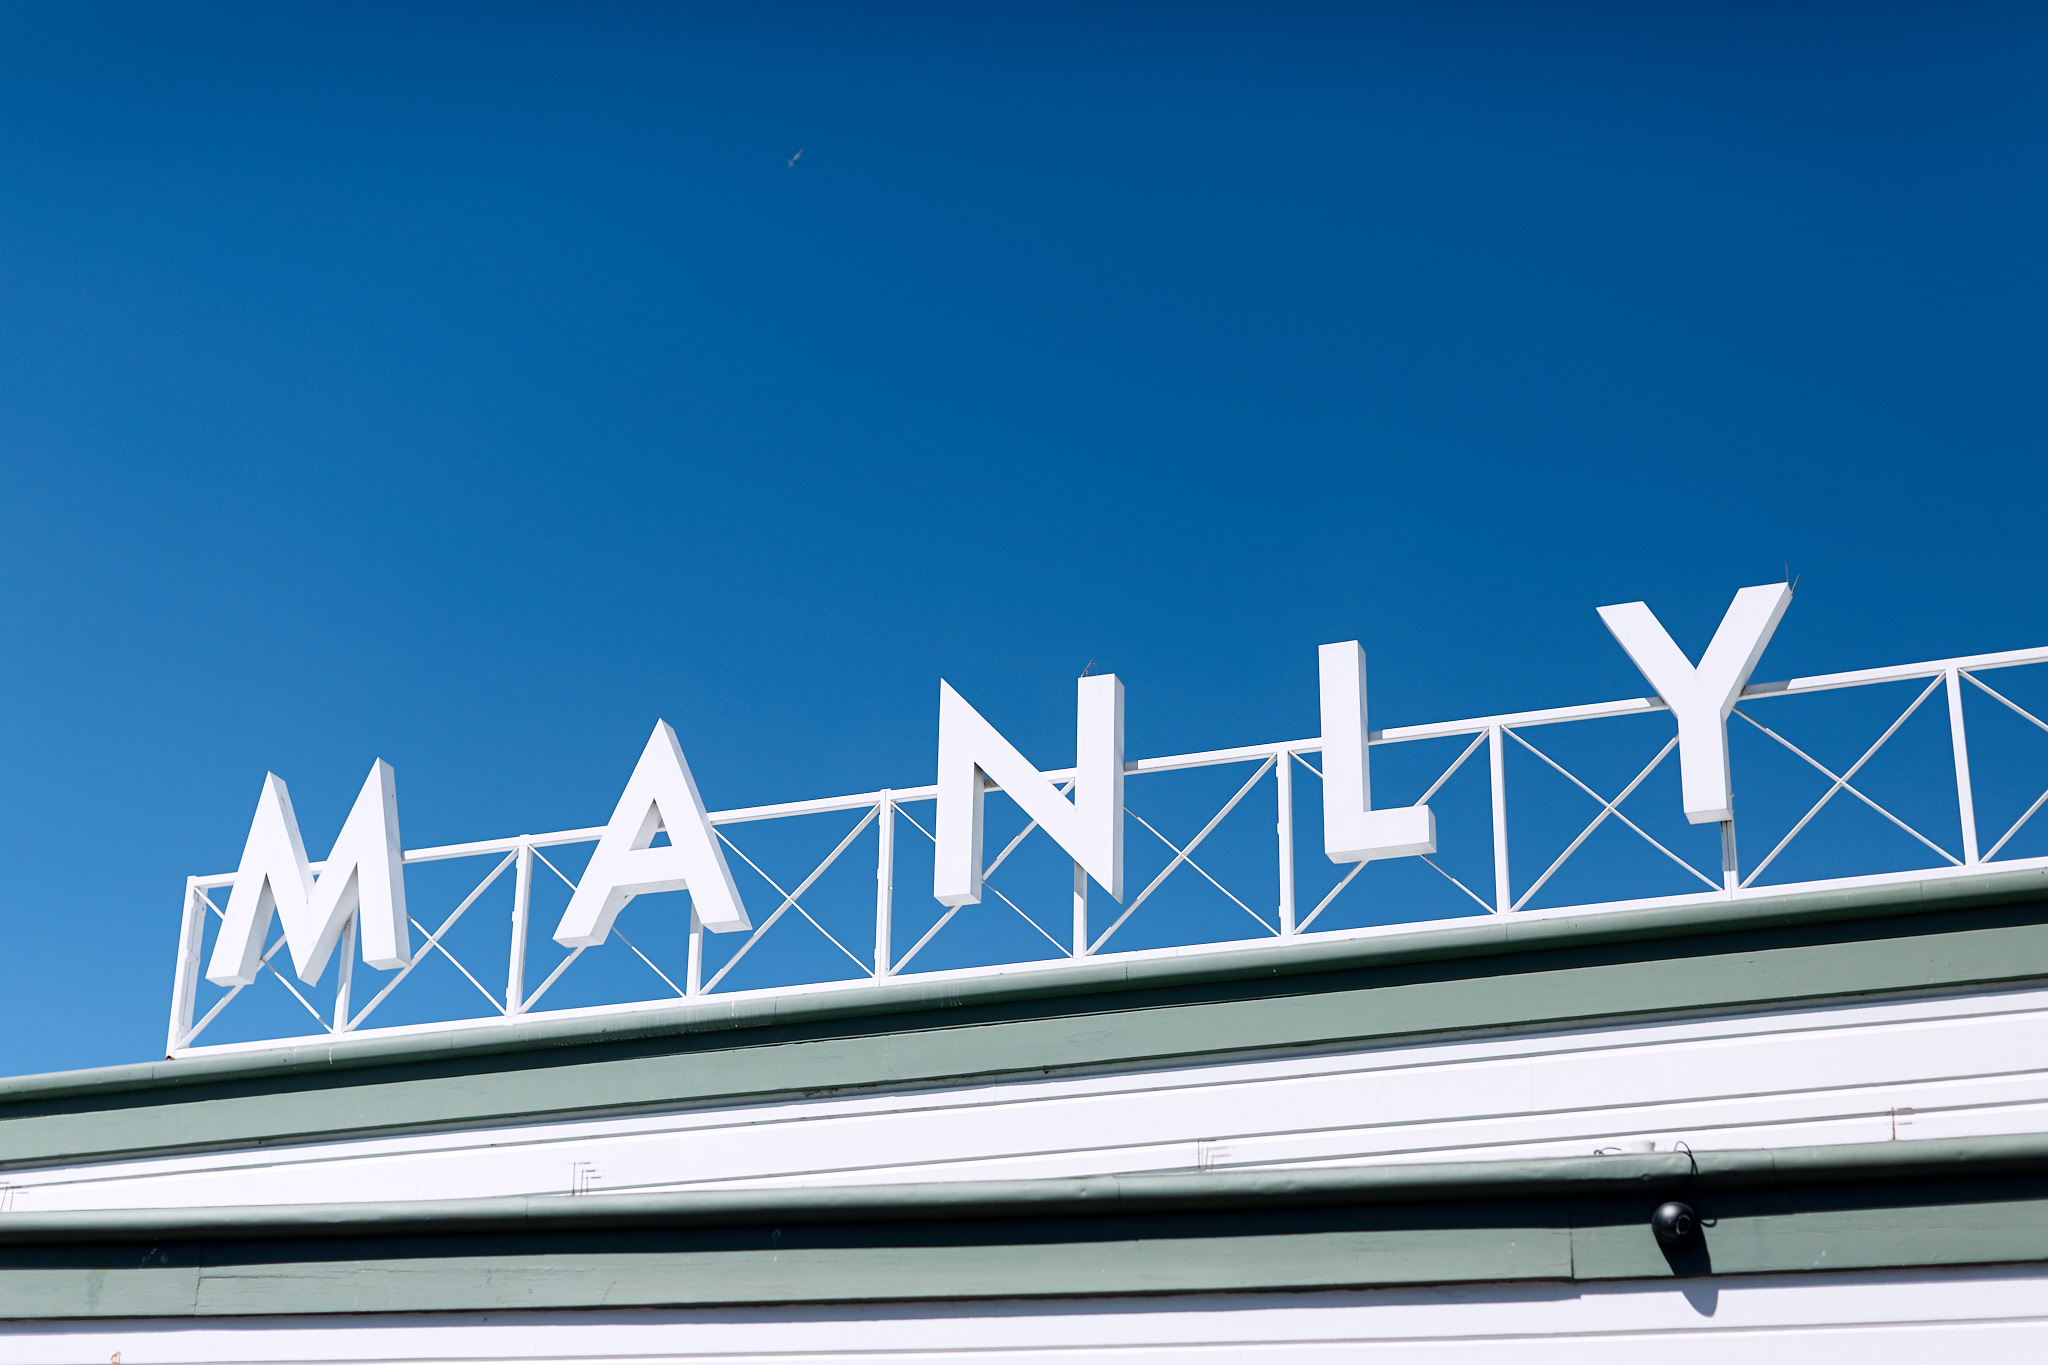 Manly sign at manly wharf.jpg